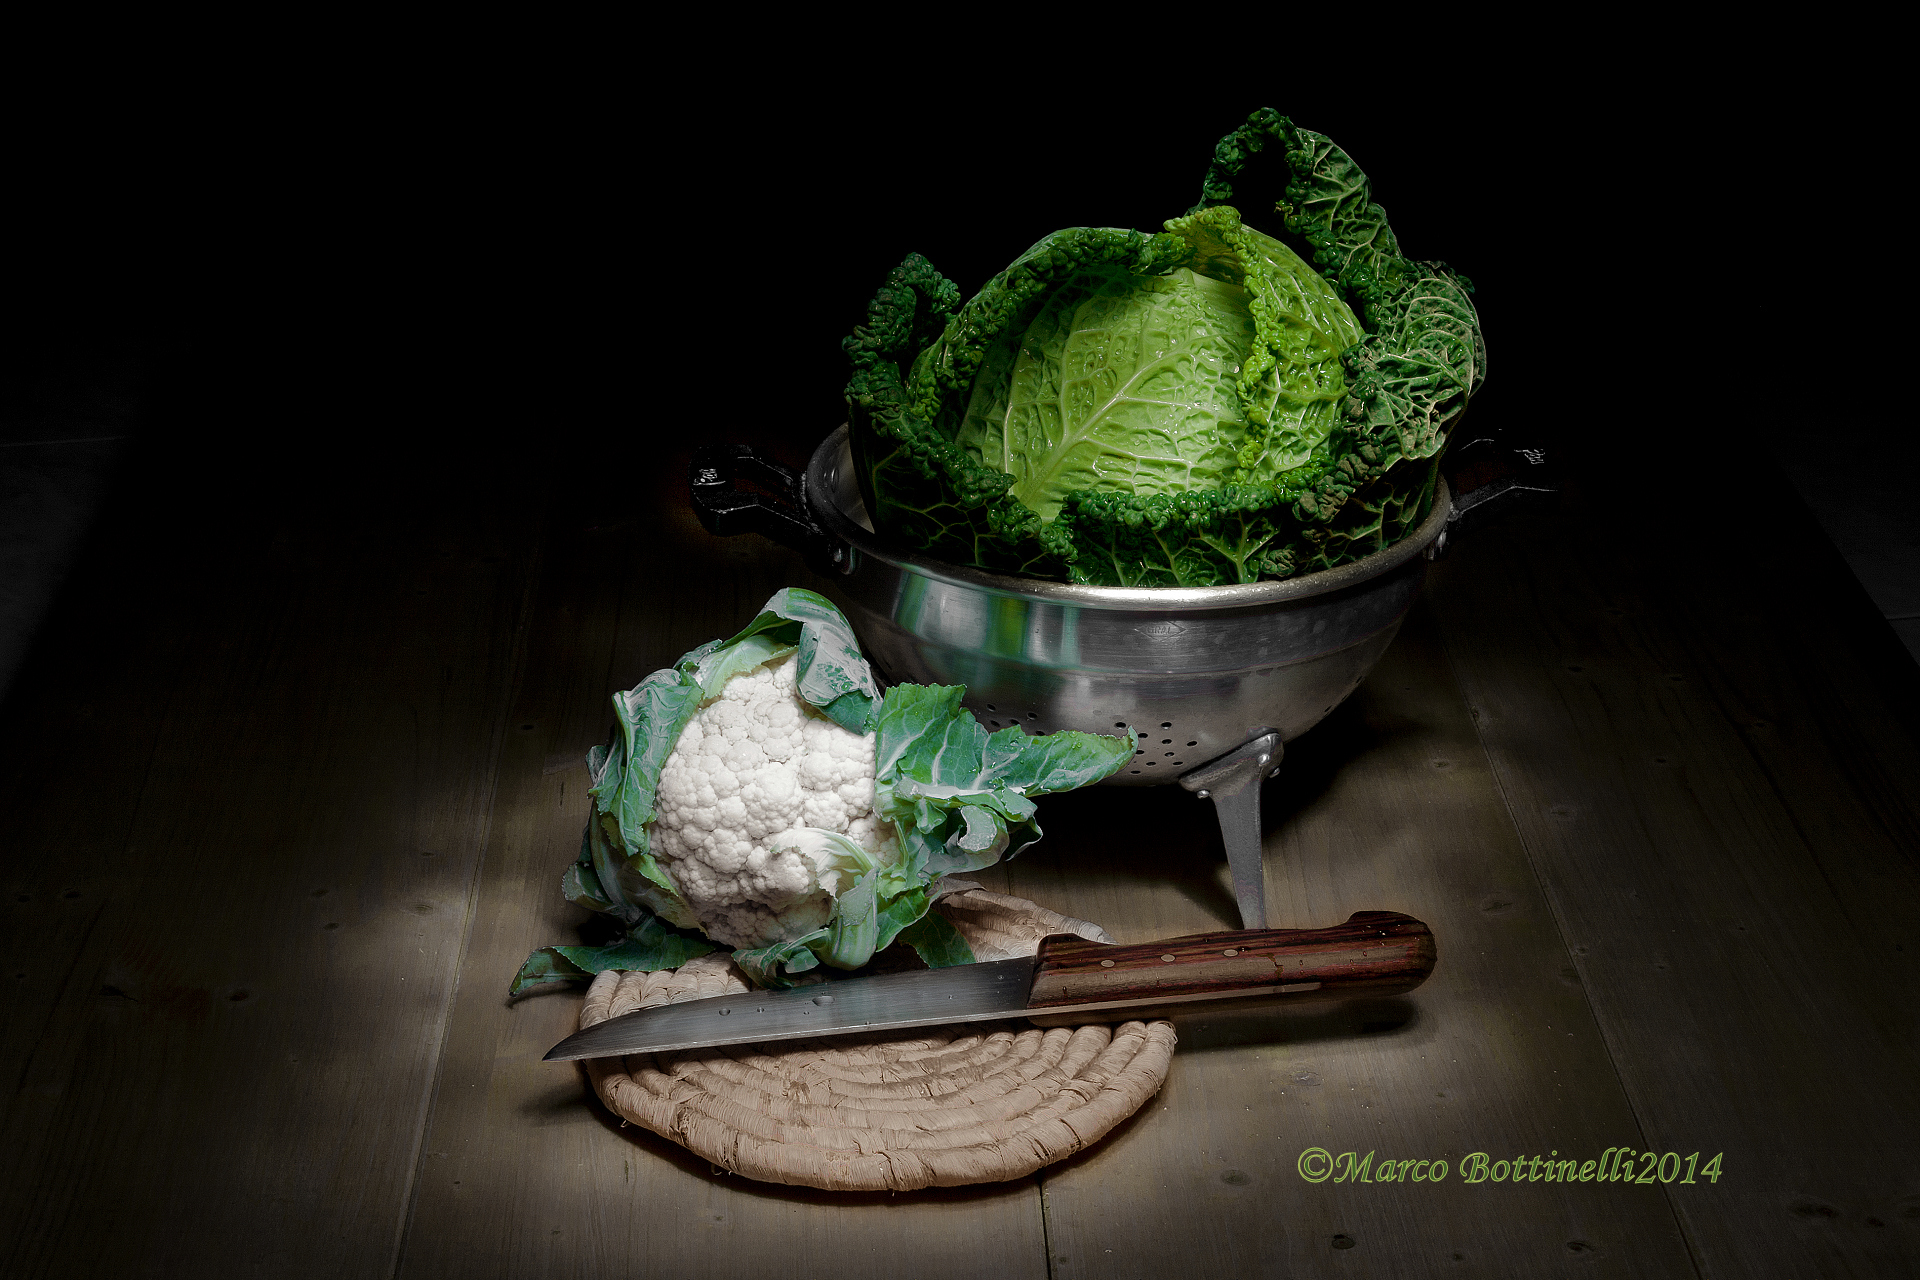 Always cabbage are .......